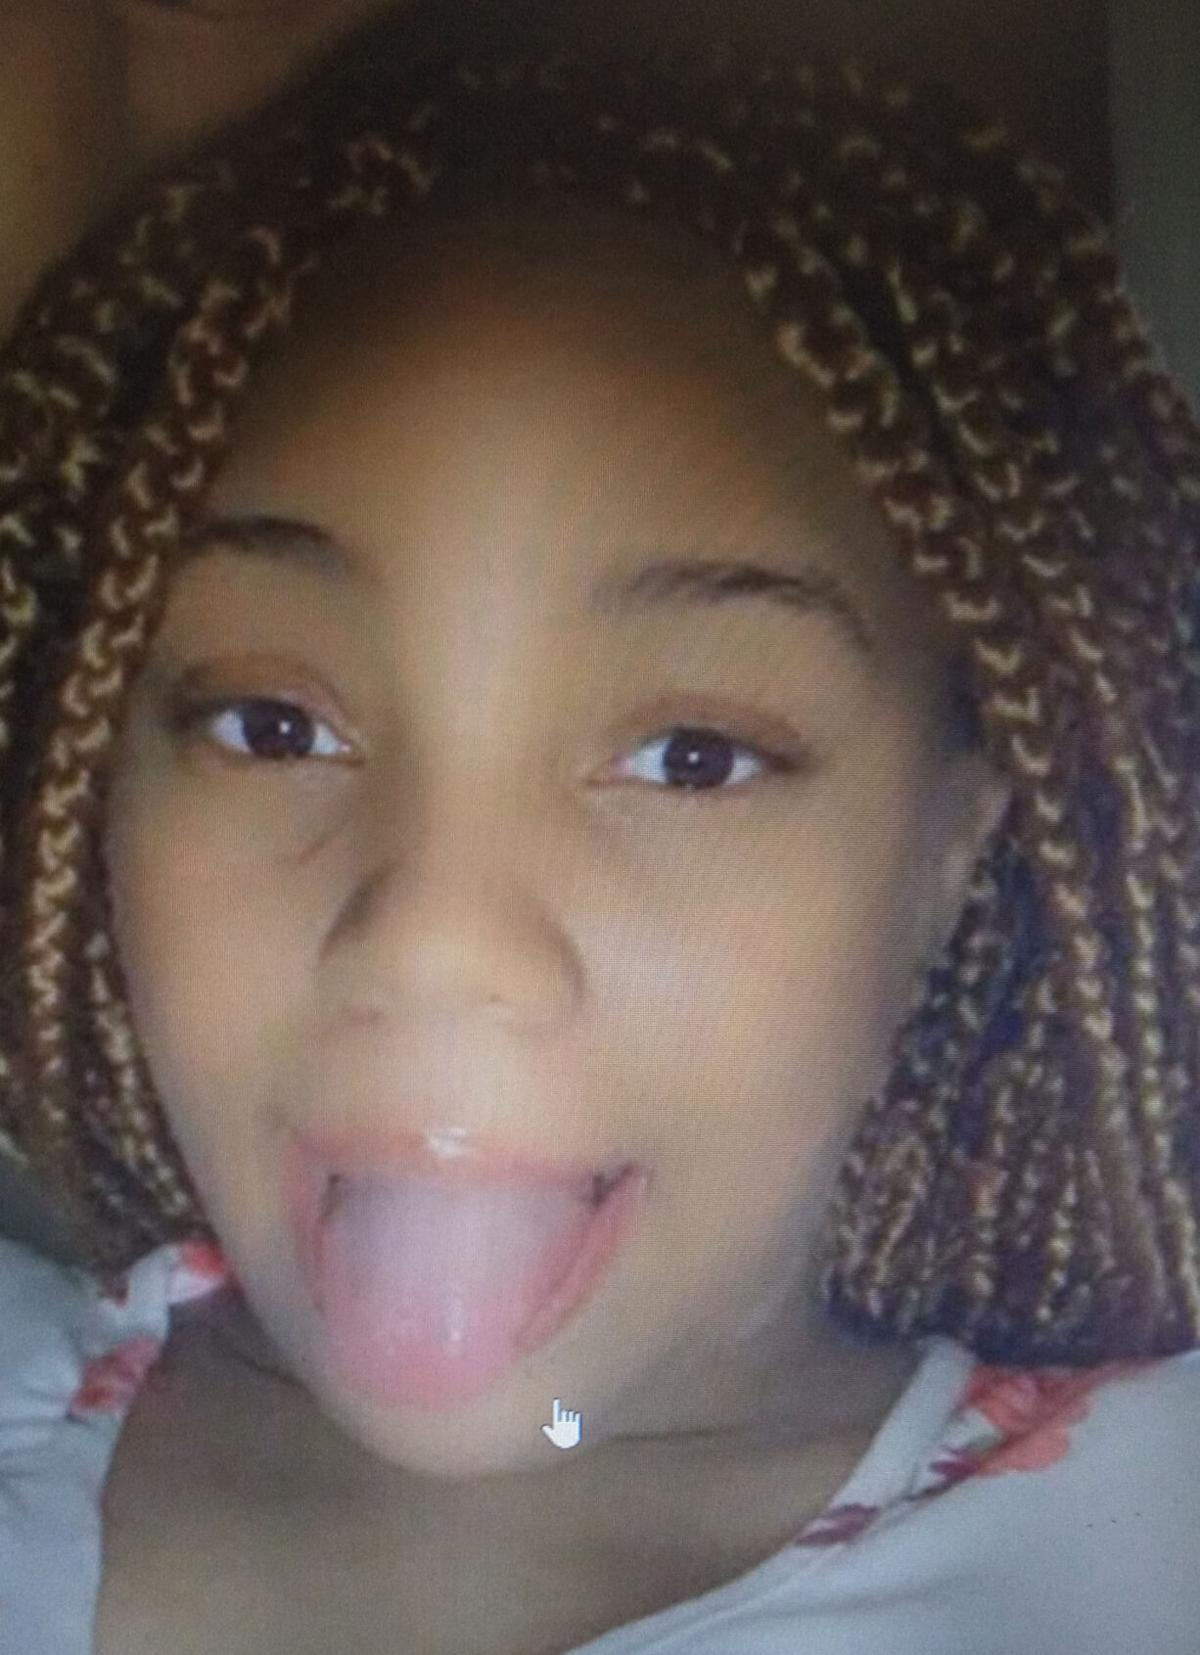 Law Enforcement search for missing mother, infant